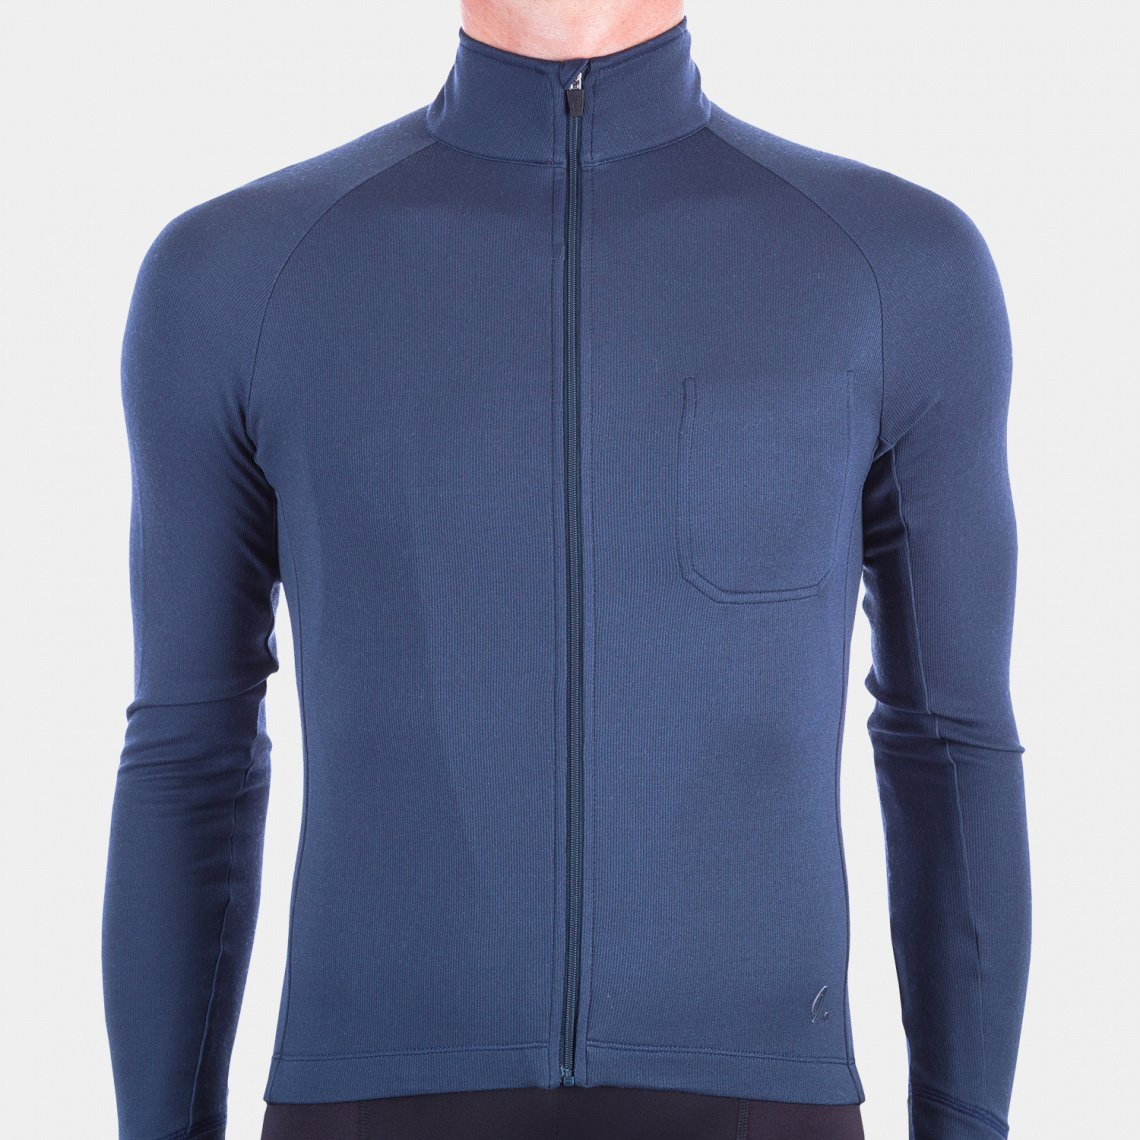 Long Sleeve Cycling Jersey - Indigo Blue Cycling Jersey Isadore XS